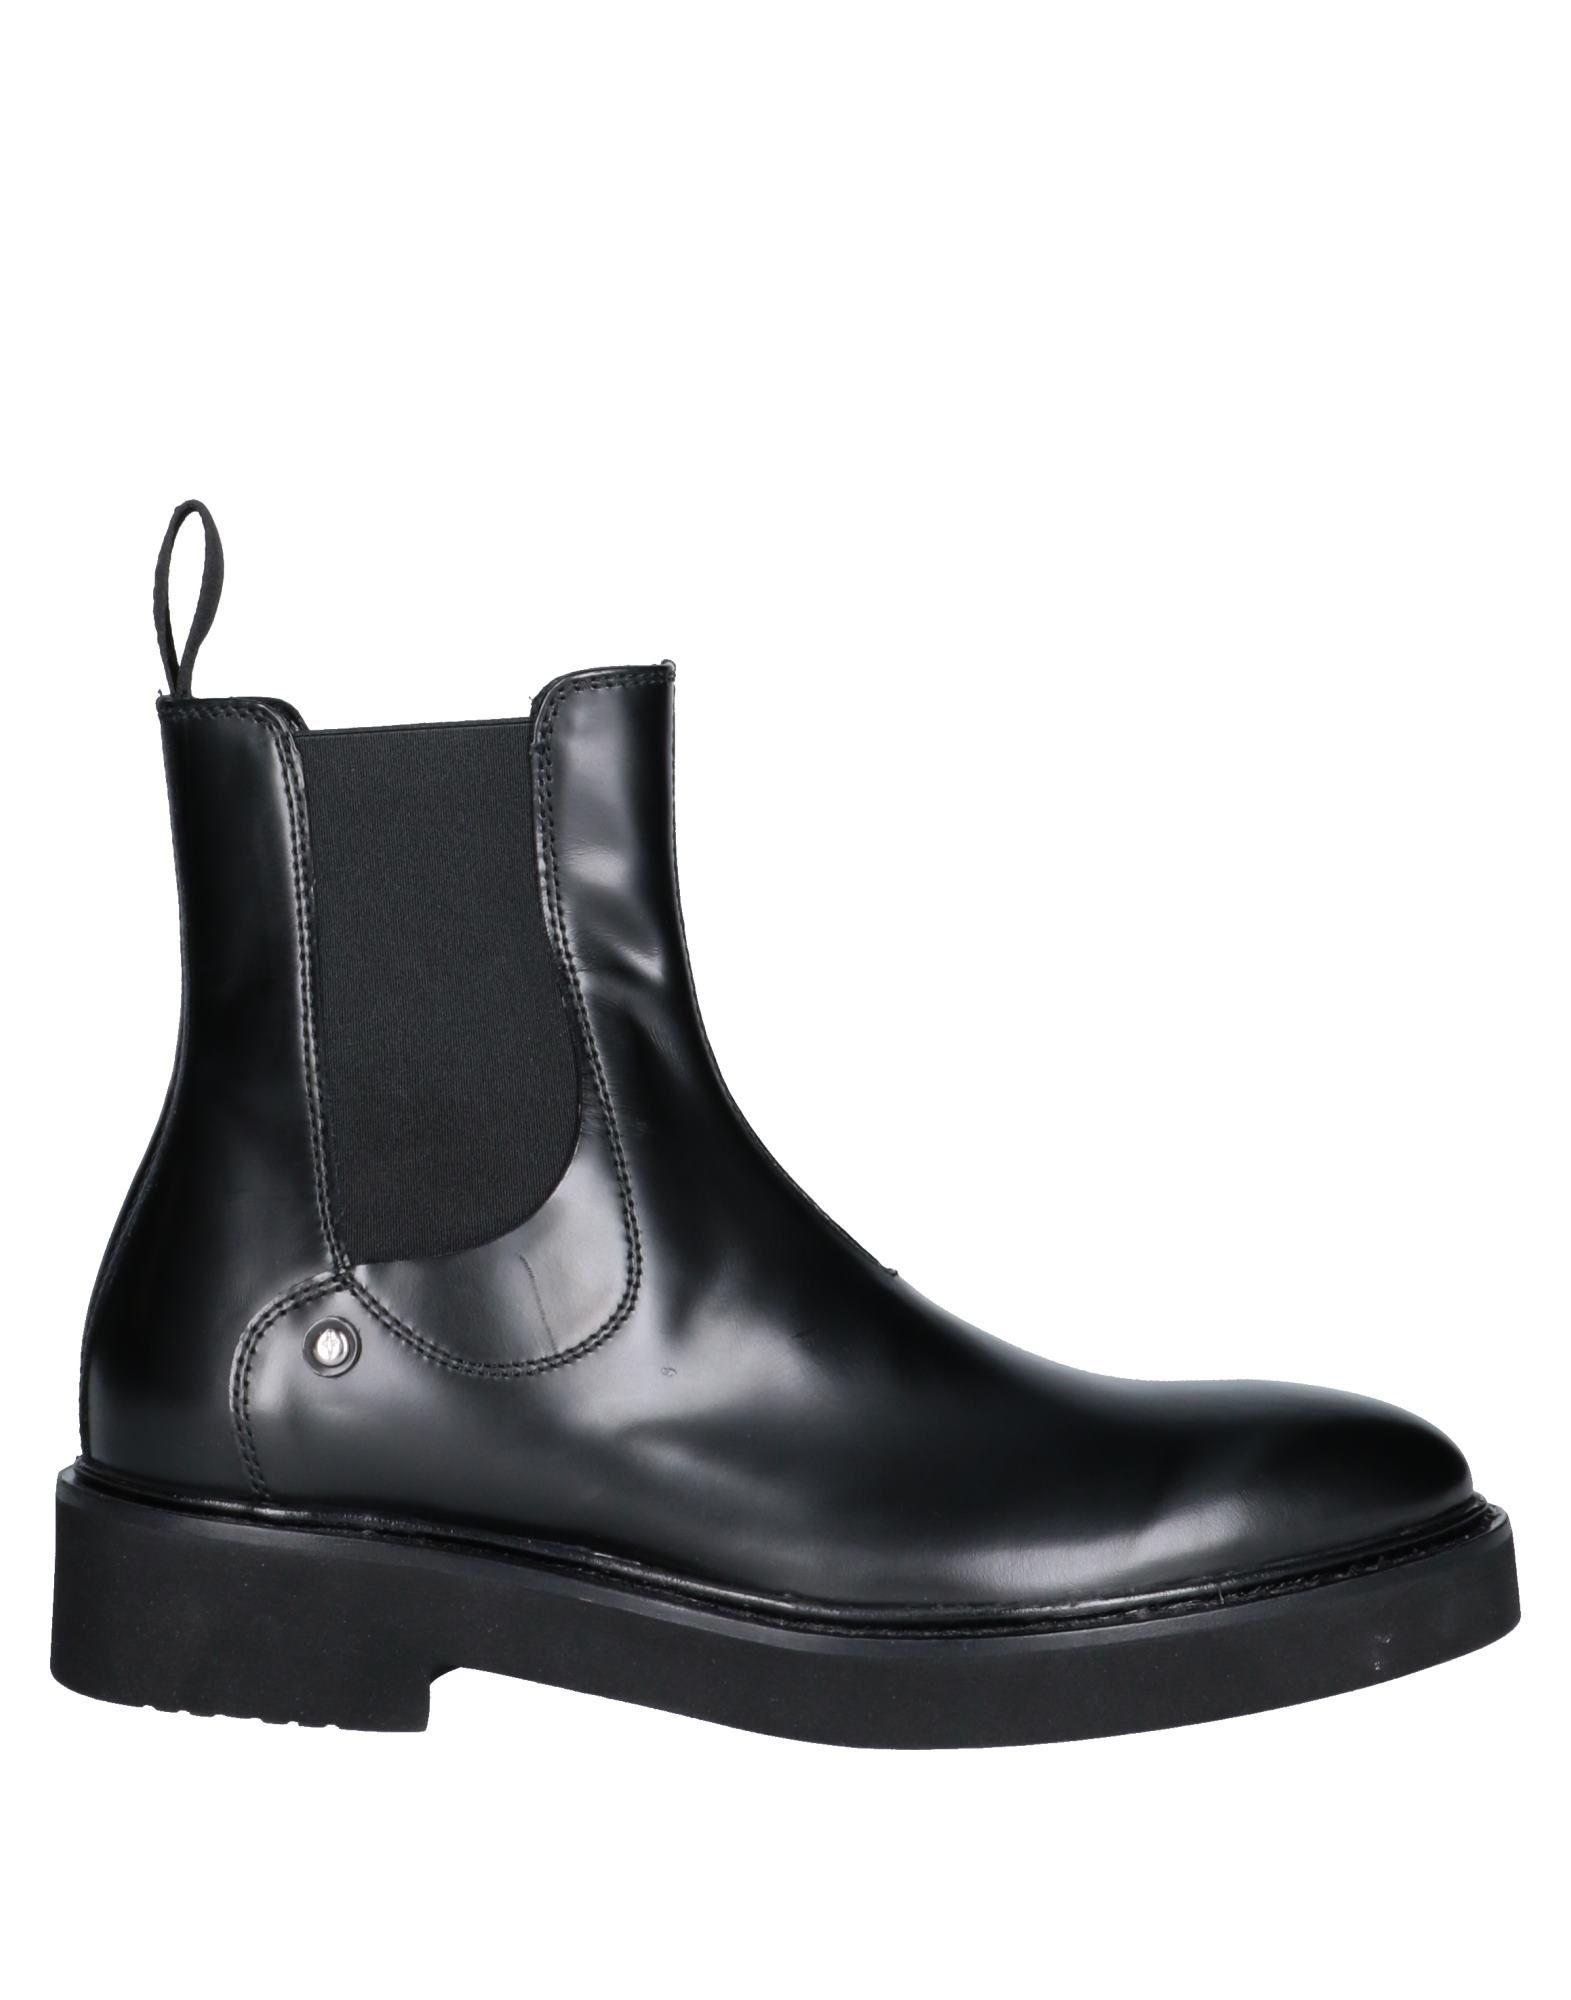 08835eb8c3221 Lyst - Paciotti 308 Madison Nyc Ankle Boots in Black for Men